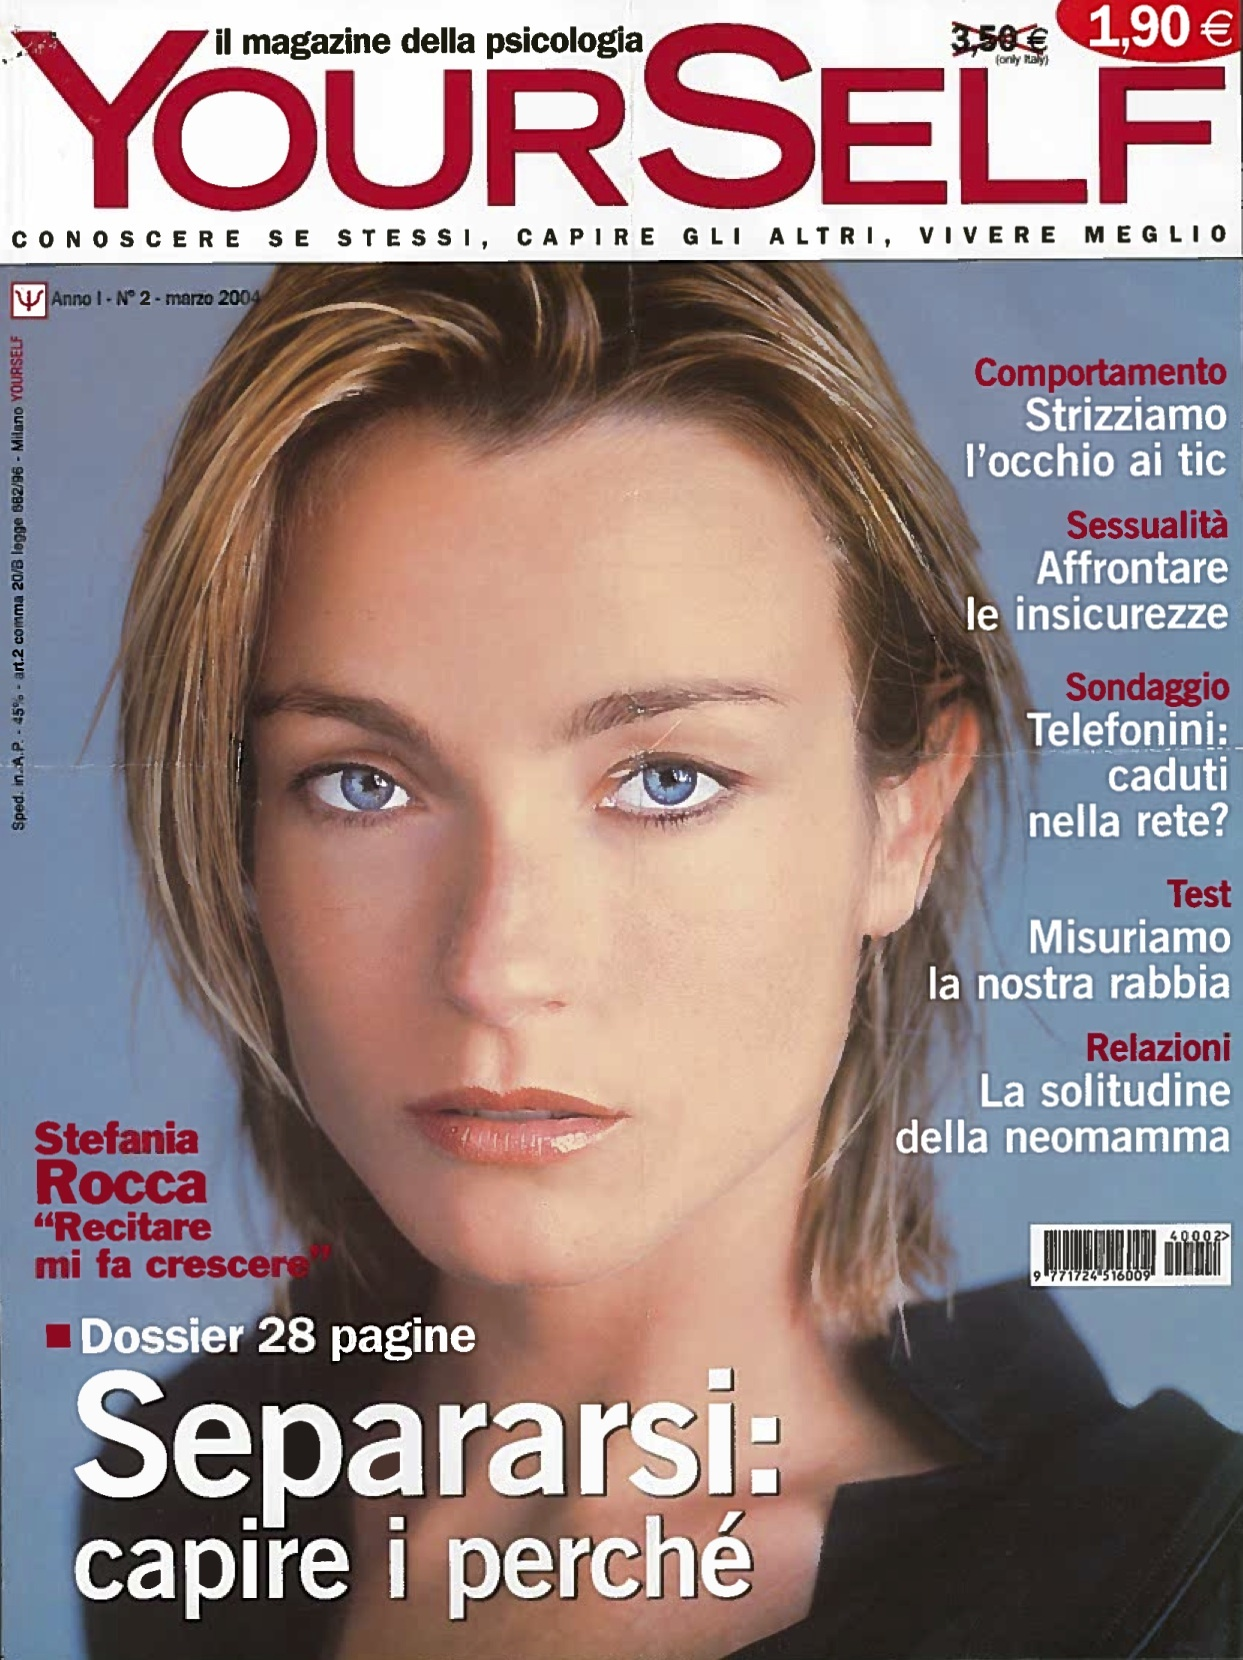 COVER_YOURSELF_MARZO2004